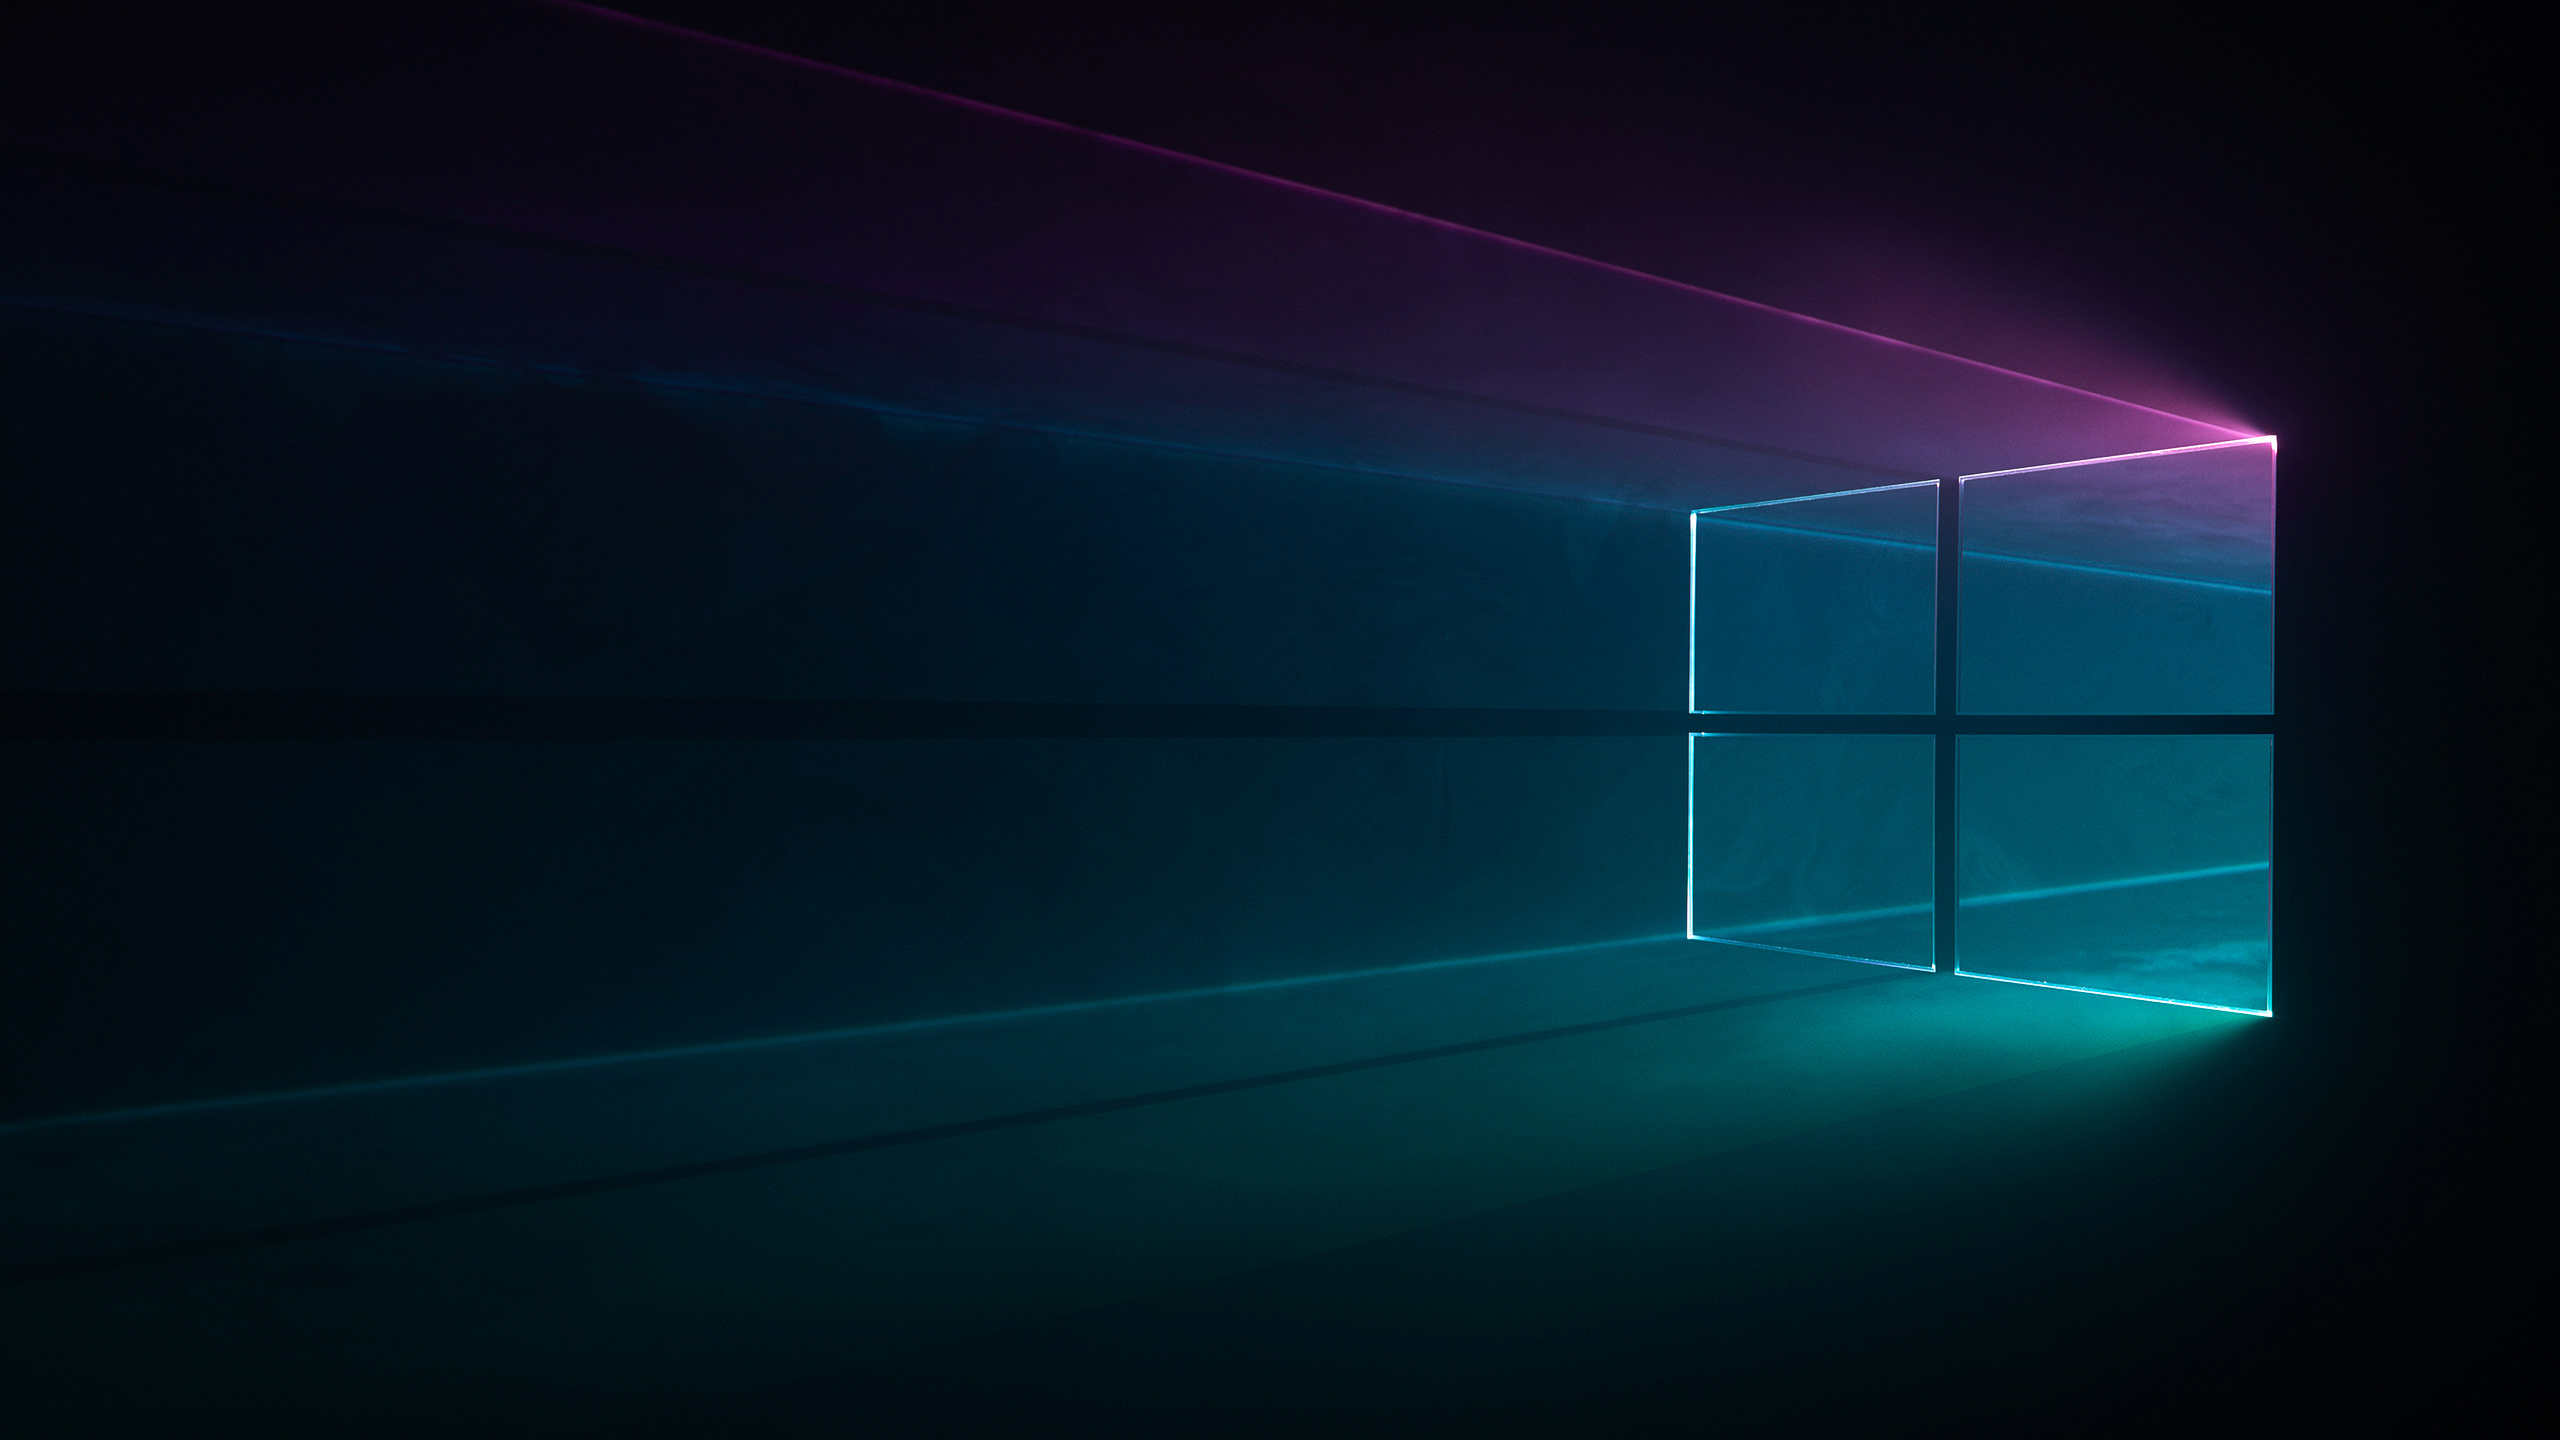 2560x1440 Windows 10 Dark 1440p Resolution Wallpaper Hd Hi Tech 4k Wallpapers Images Photos And Background